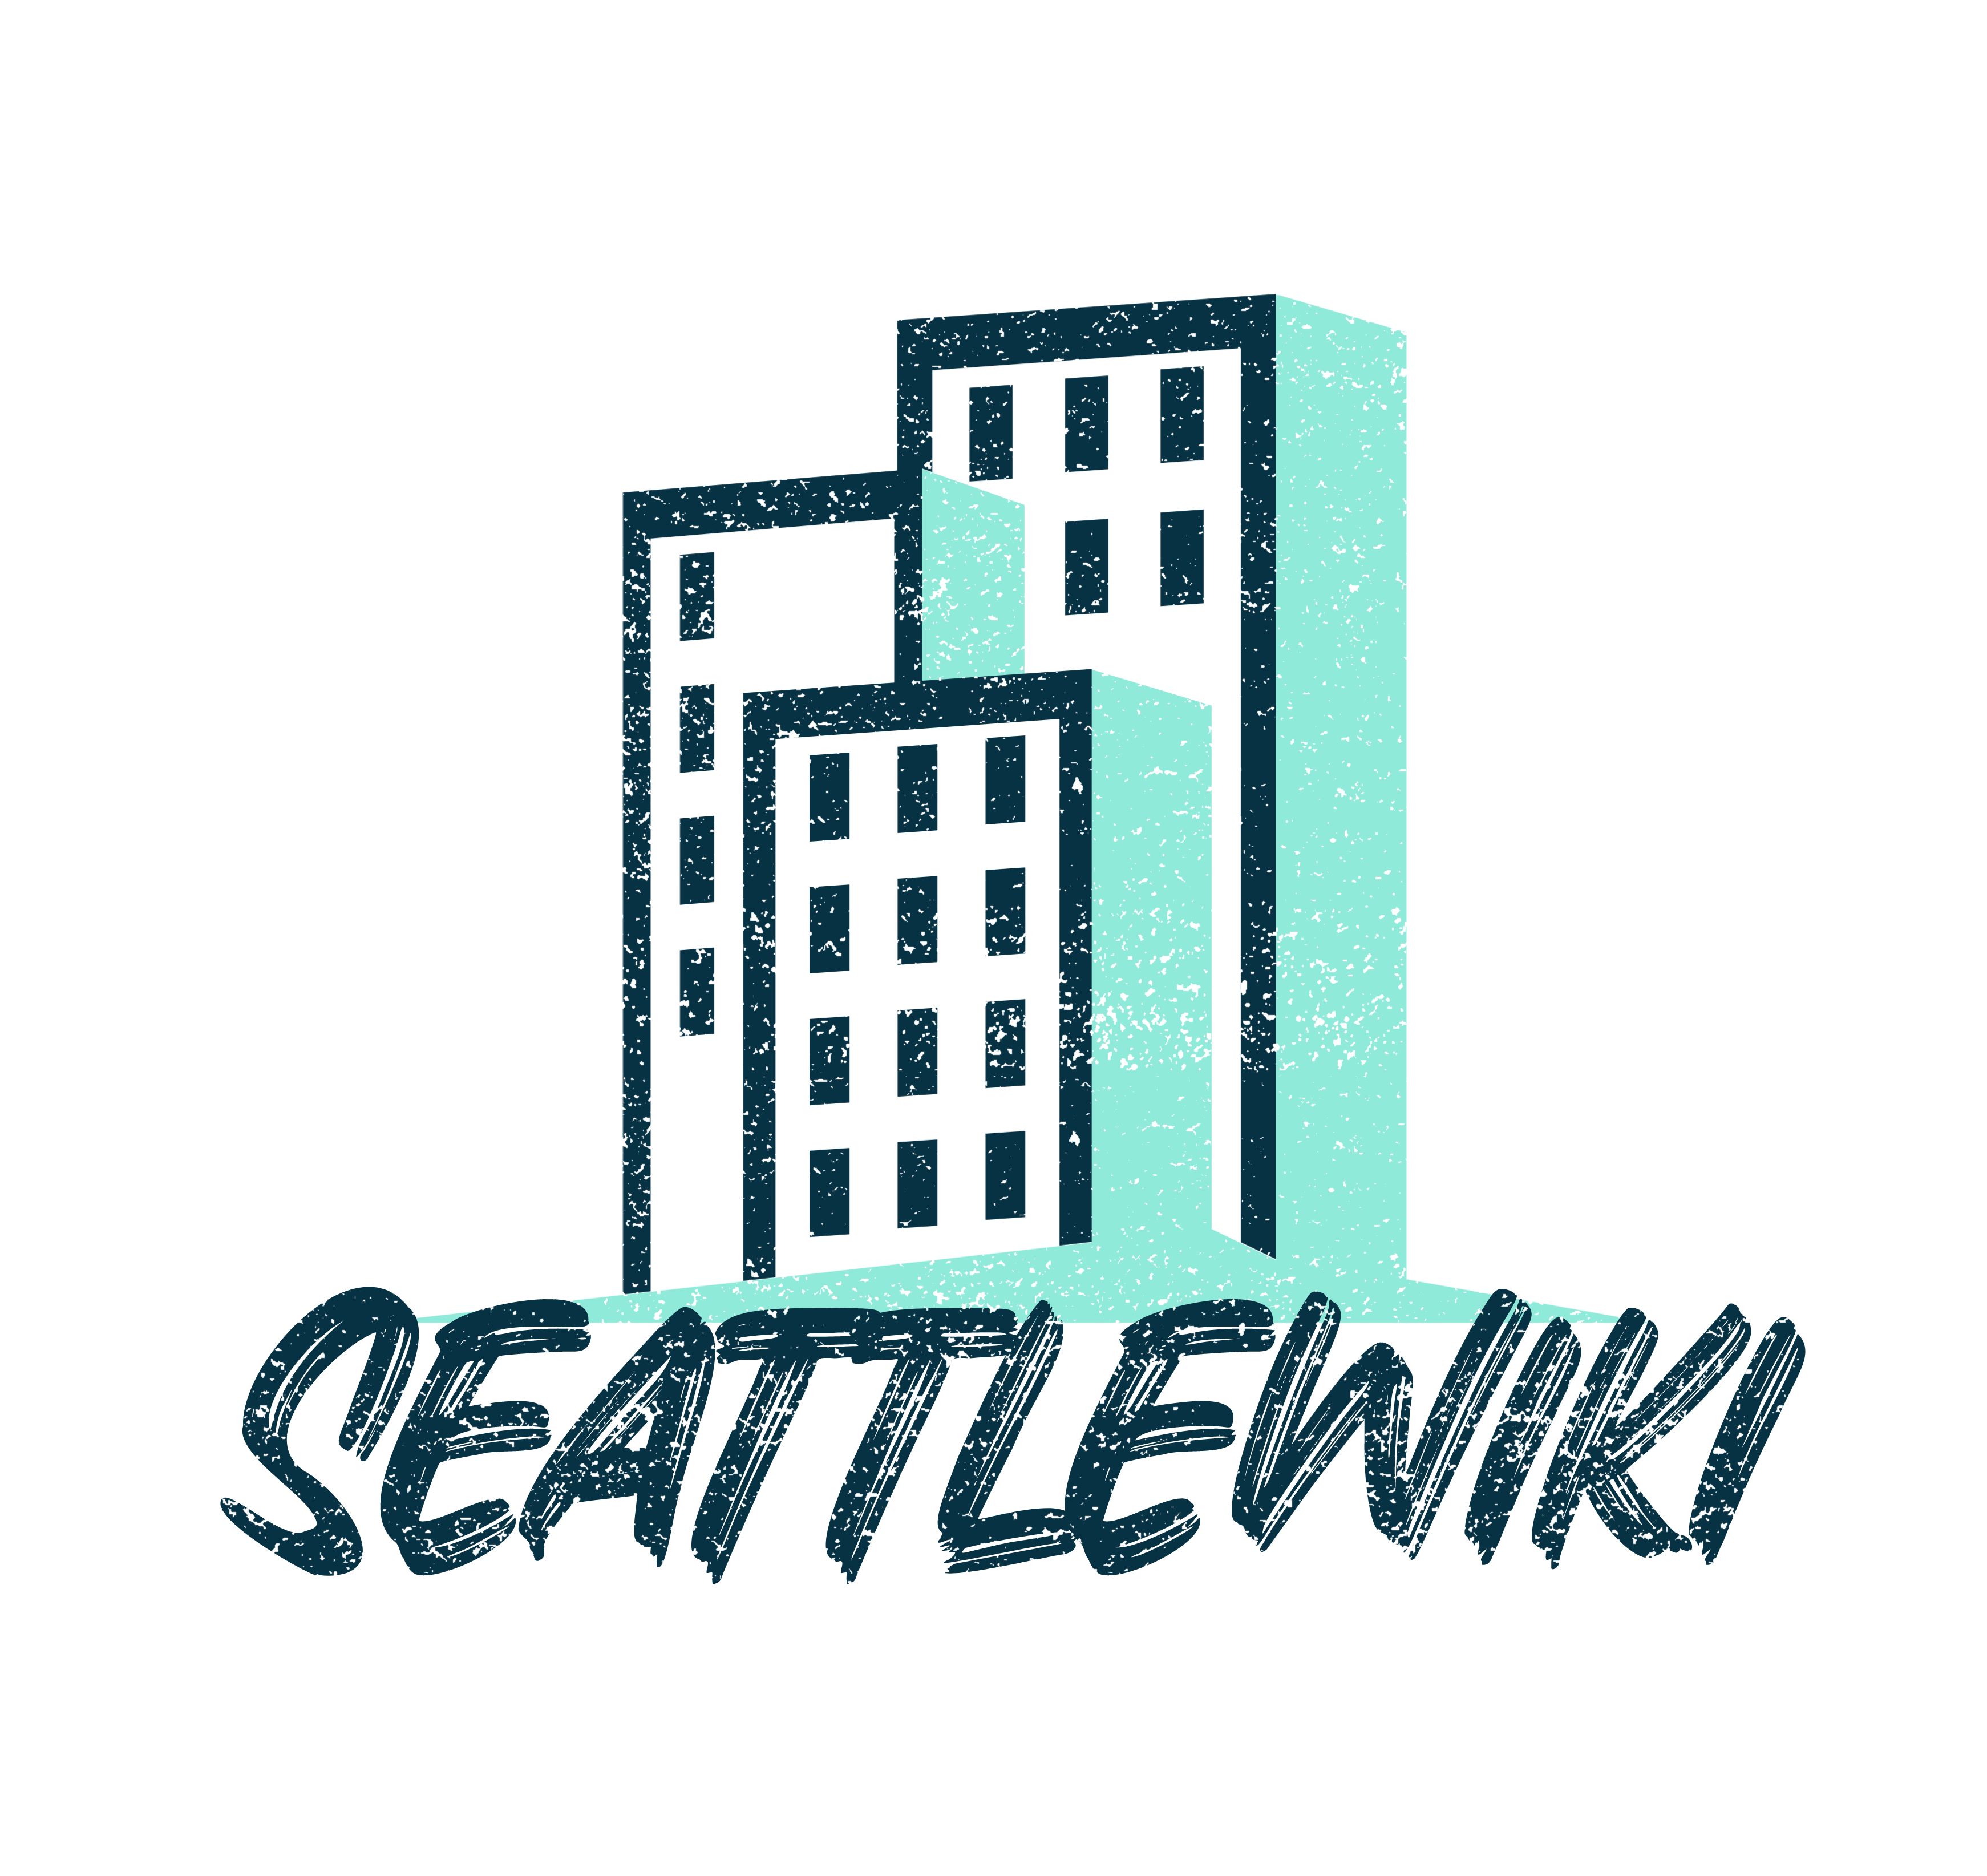 seattlewiki.net